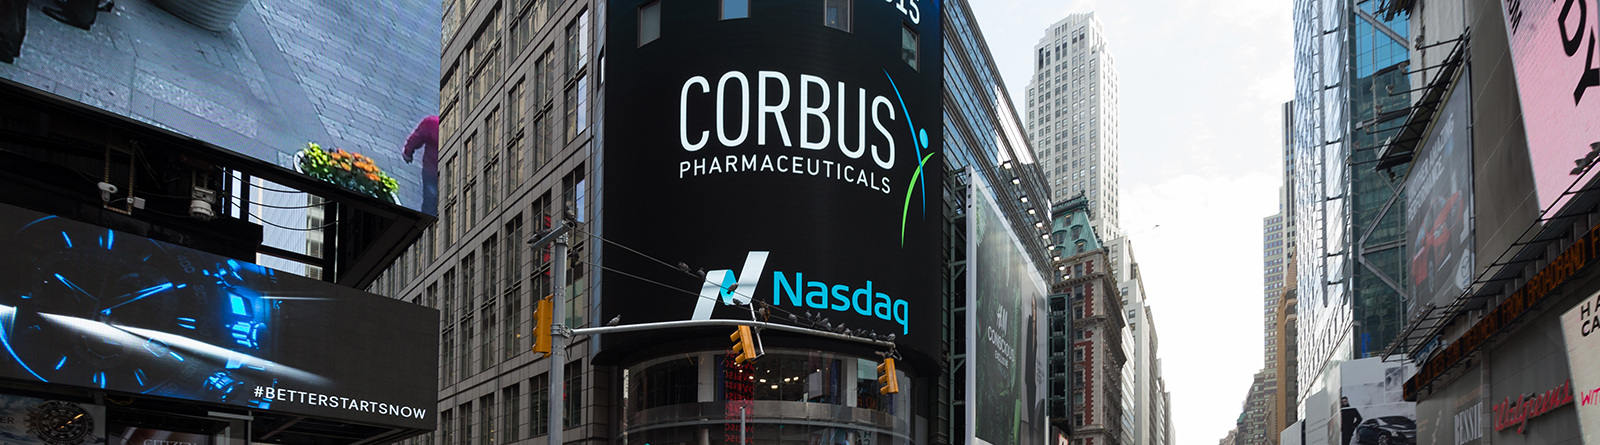 Corbus Pharmaceuticals to Report Second Quarter Results on August 6, 2020 Banner